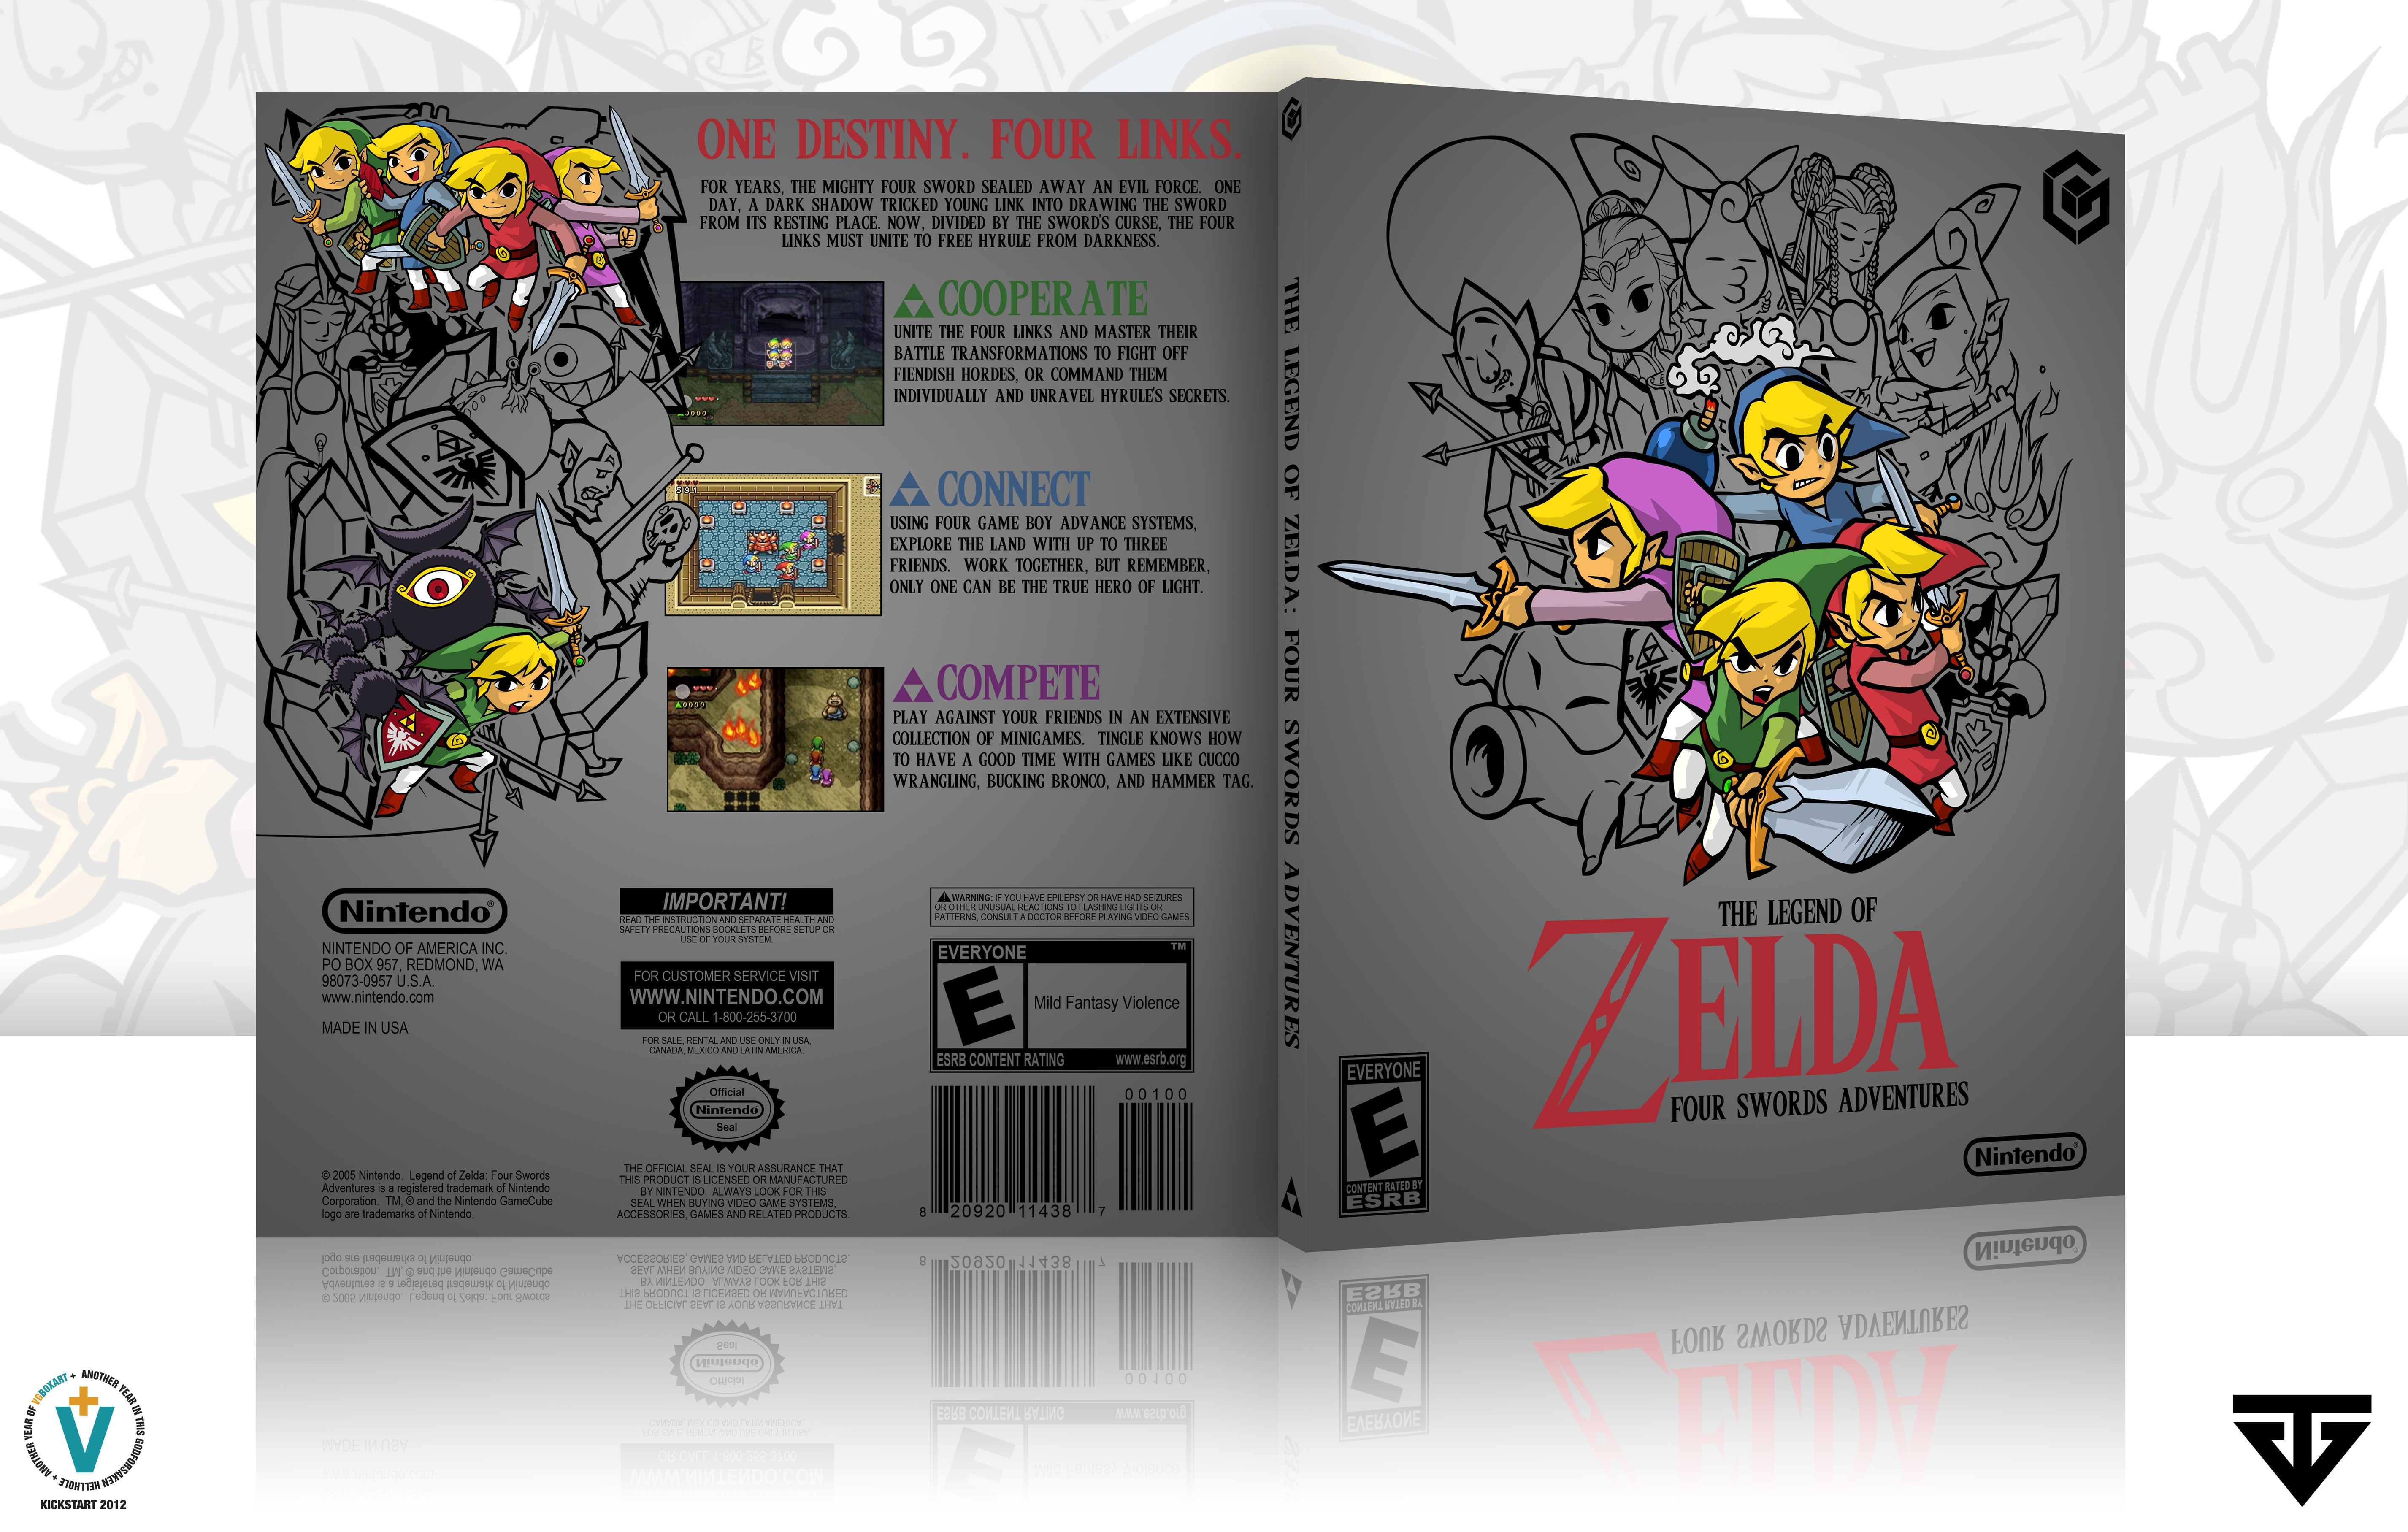 The Legend of Zelda: Four Swords Adventures box cover